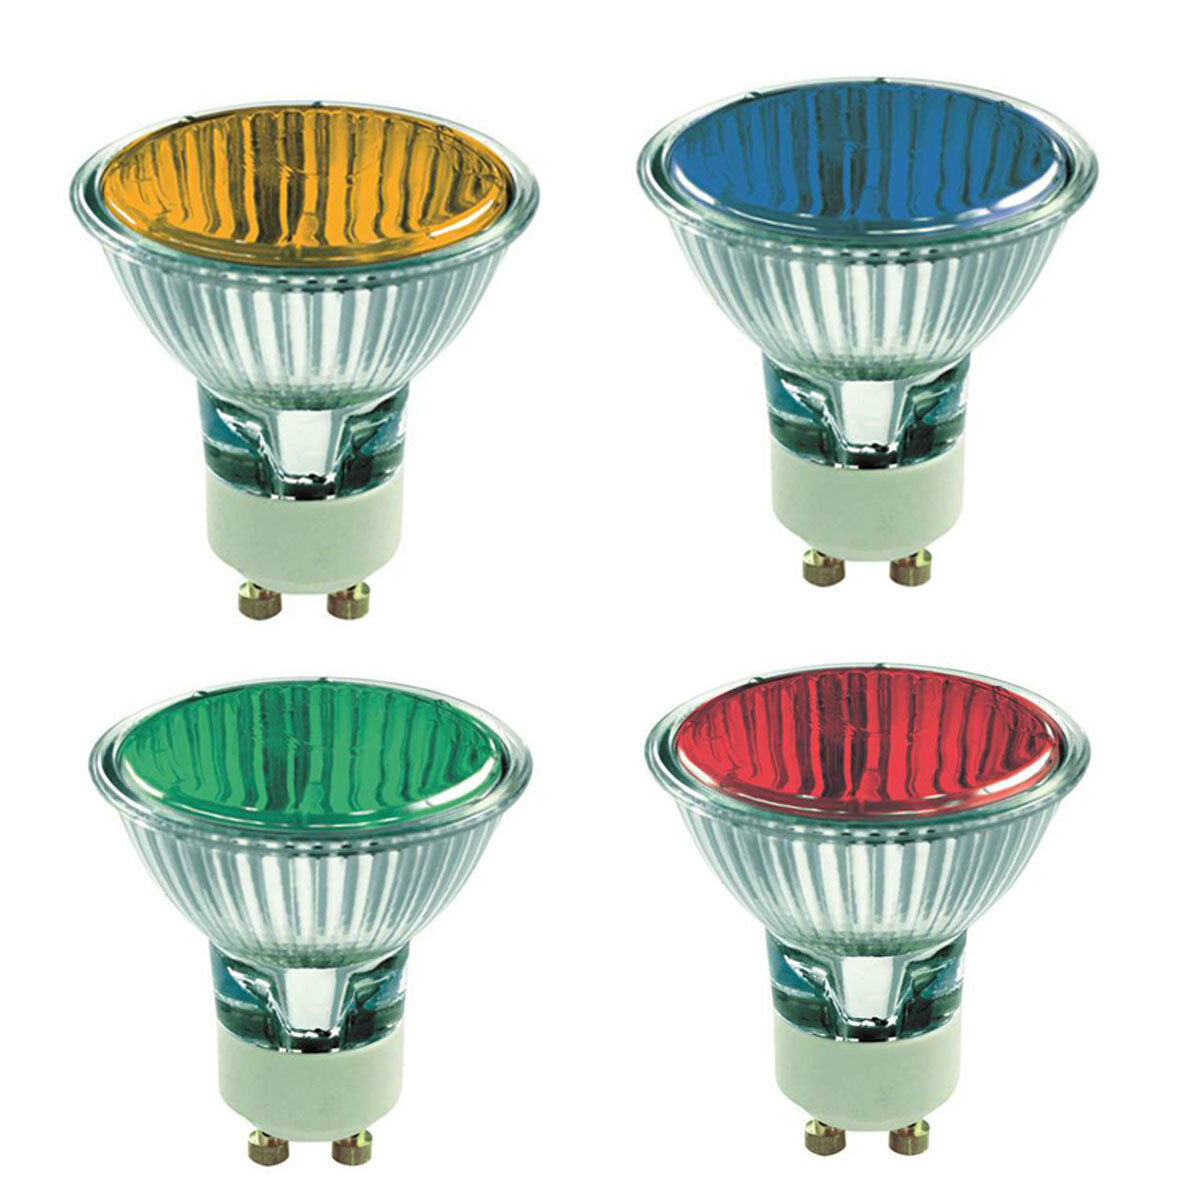 Halogen Gu10 Coloured Gu10 50w Halogen Light Bulbs Red Green Blue